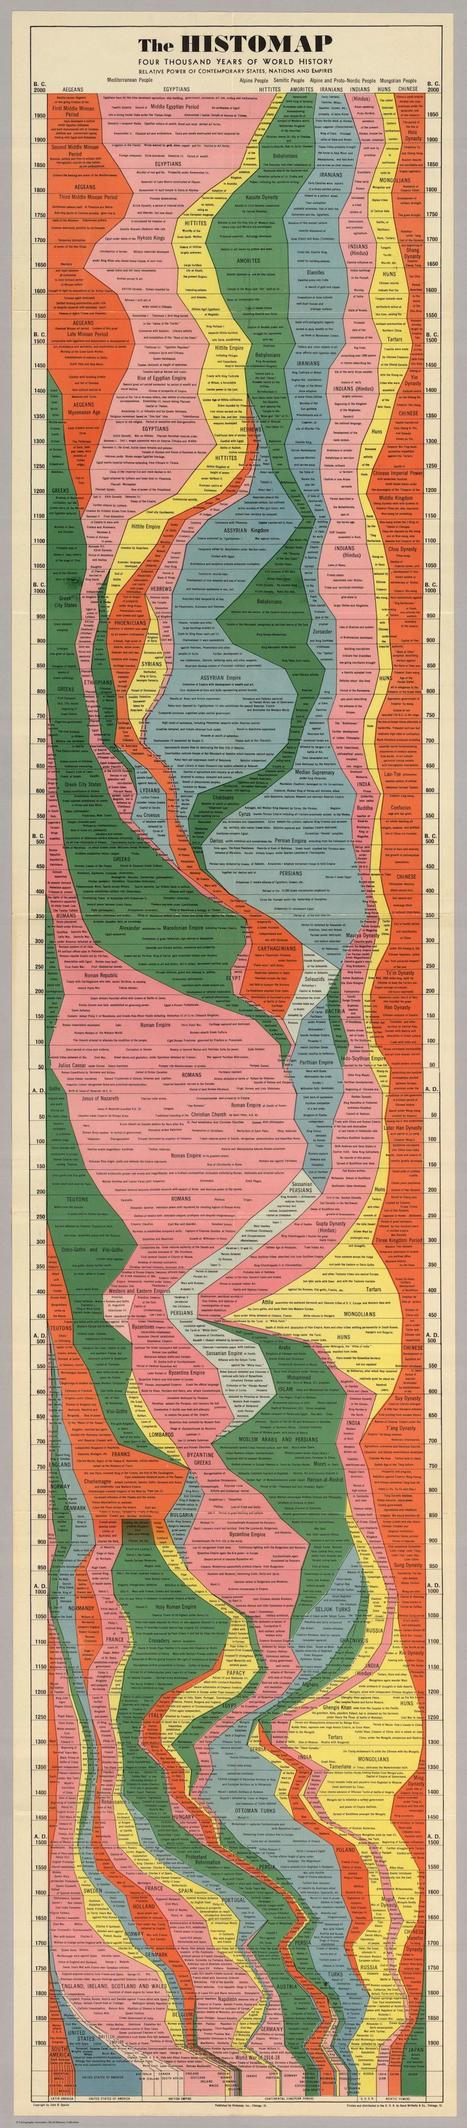 The Entire History of the World—Really, All of It—Distilled Into a Single Gorgeous Chart | World History and Current Issues | Scoop.it